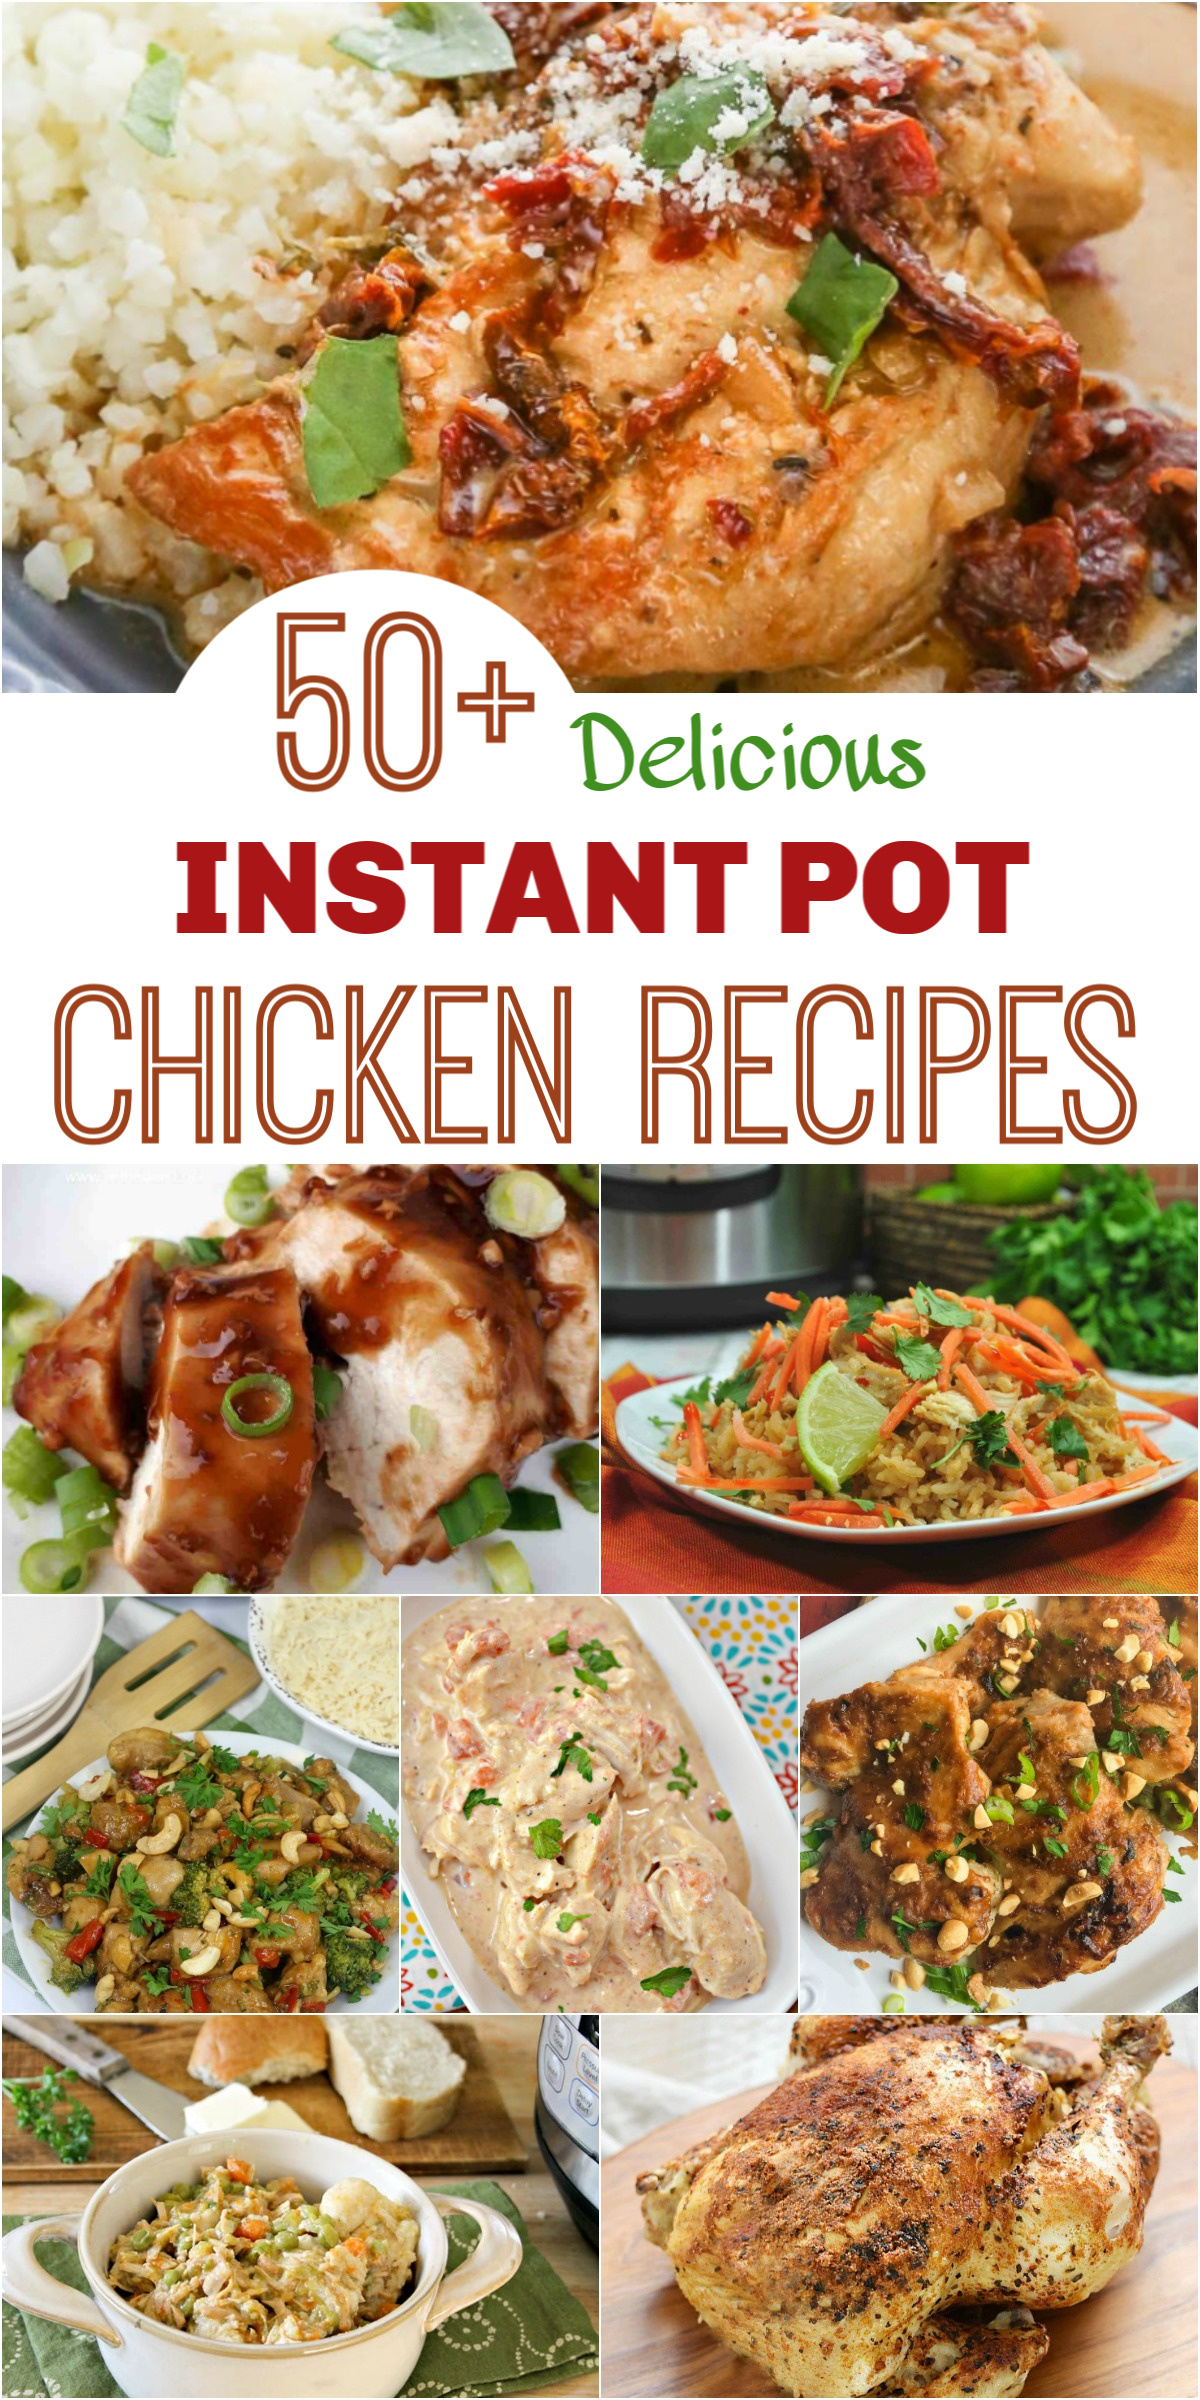 50+ Delicious Instant Pot Chicken Breast & Other Chicken Cuts Recipes